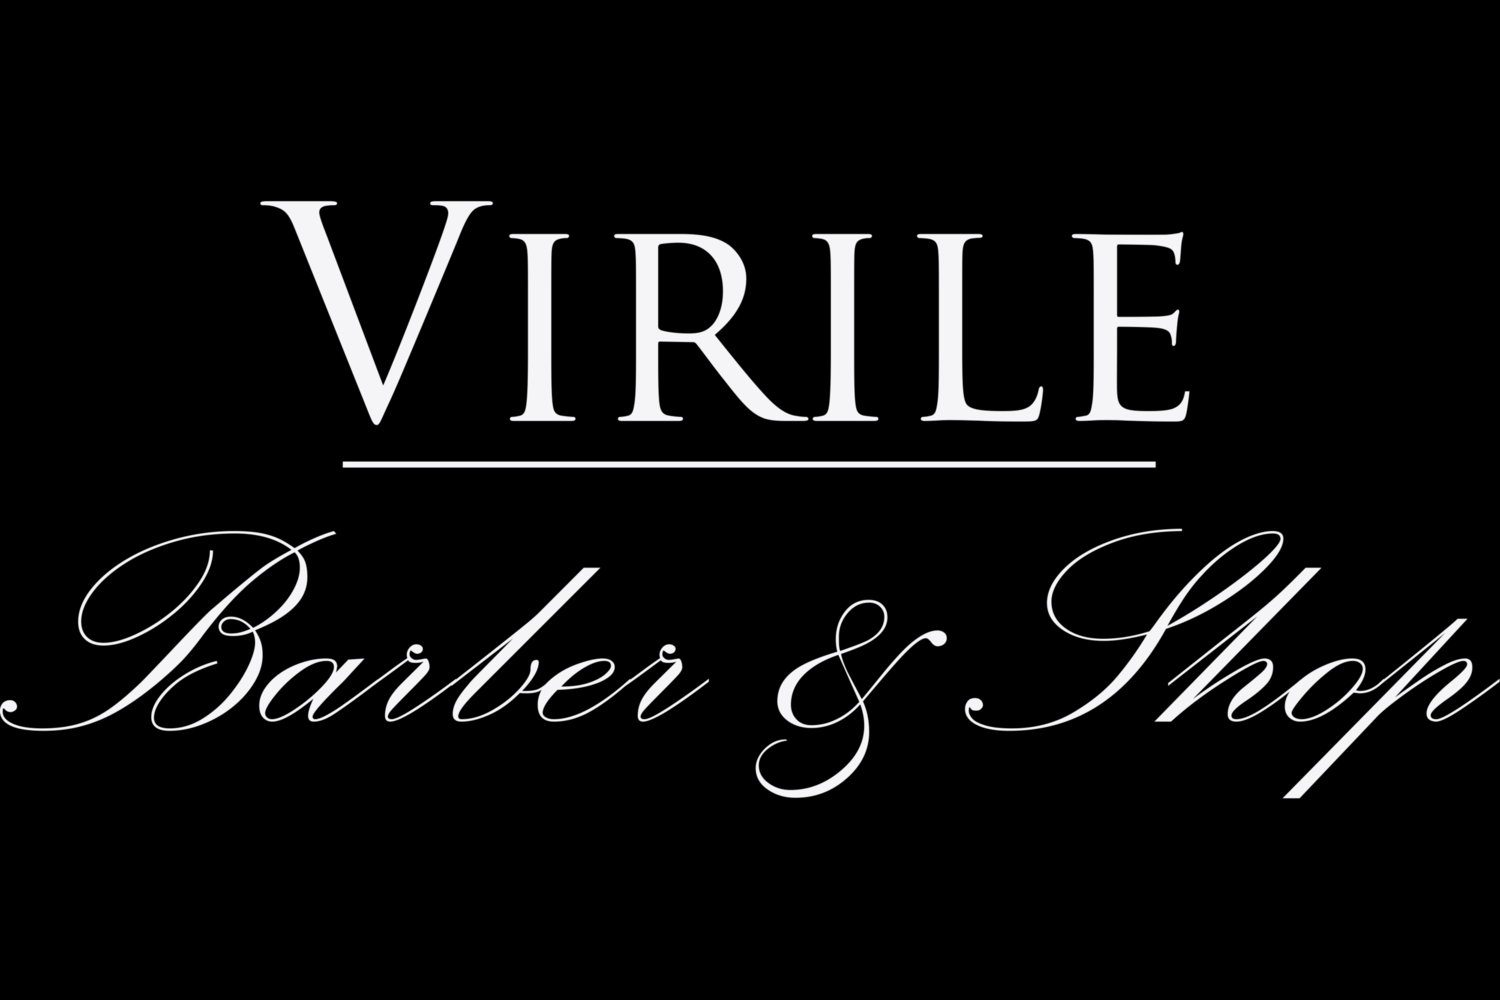 VIRILE BARBER SHOP